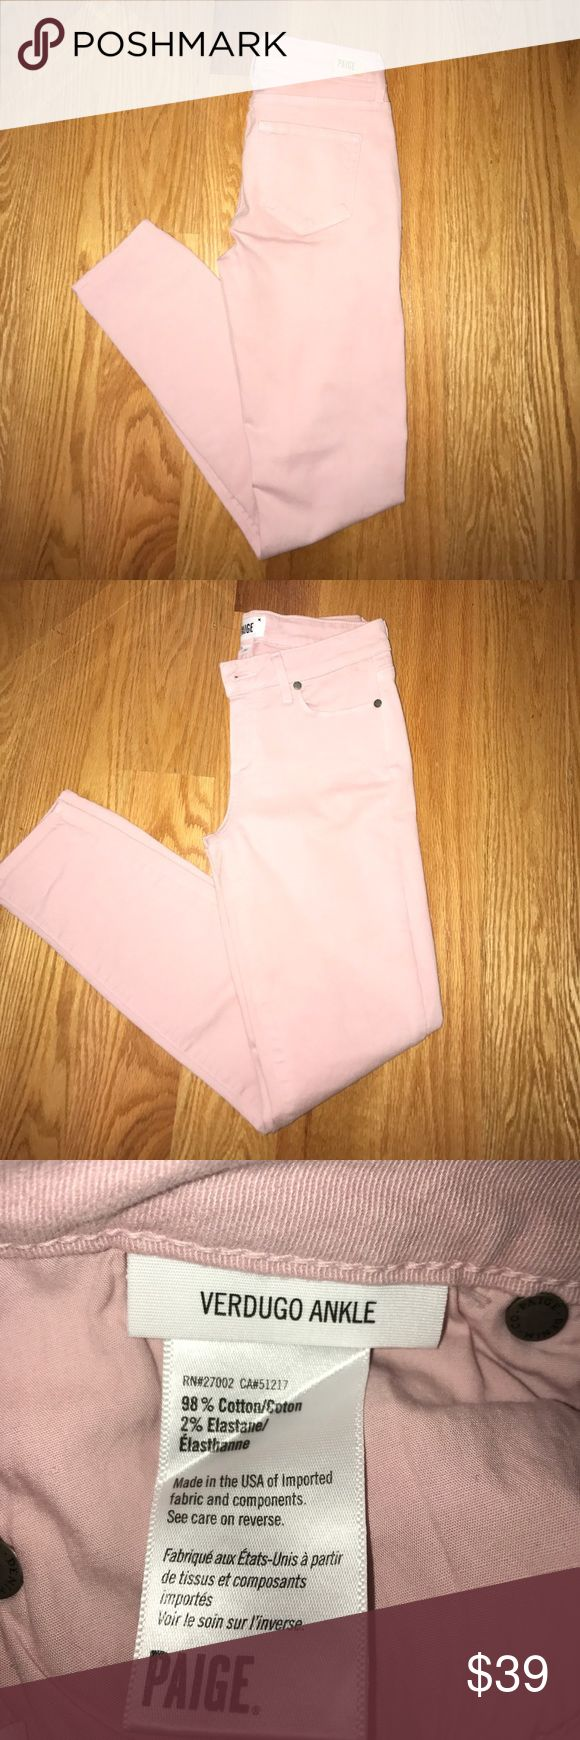 """Paige Verdugo skinny ankle jeans in Spanish Rose Brand new never worn jeans. Nice stretchy fabric. Pretty dusty pink. 27"""" long. Rise 8"""". Paige Jeans Jeans Ankle & Cropped"""